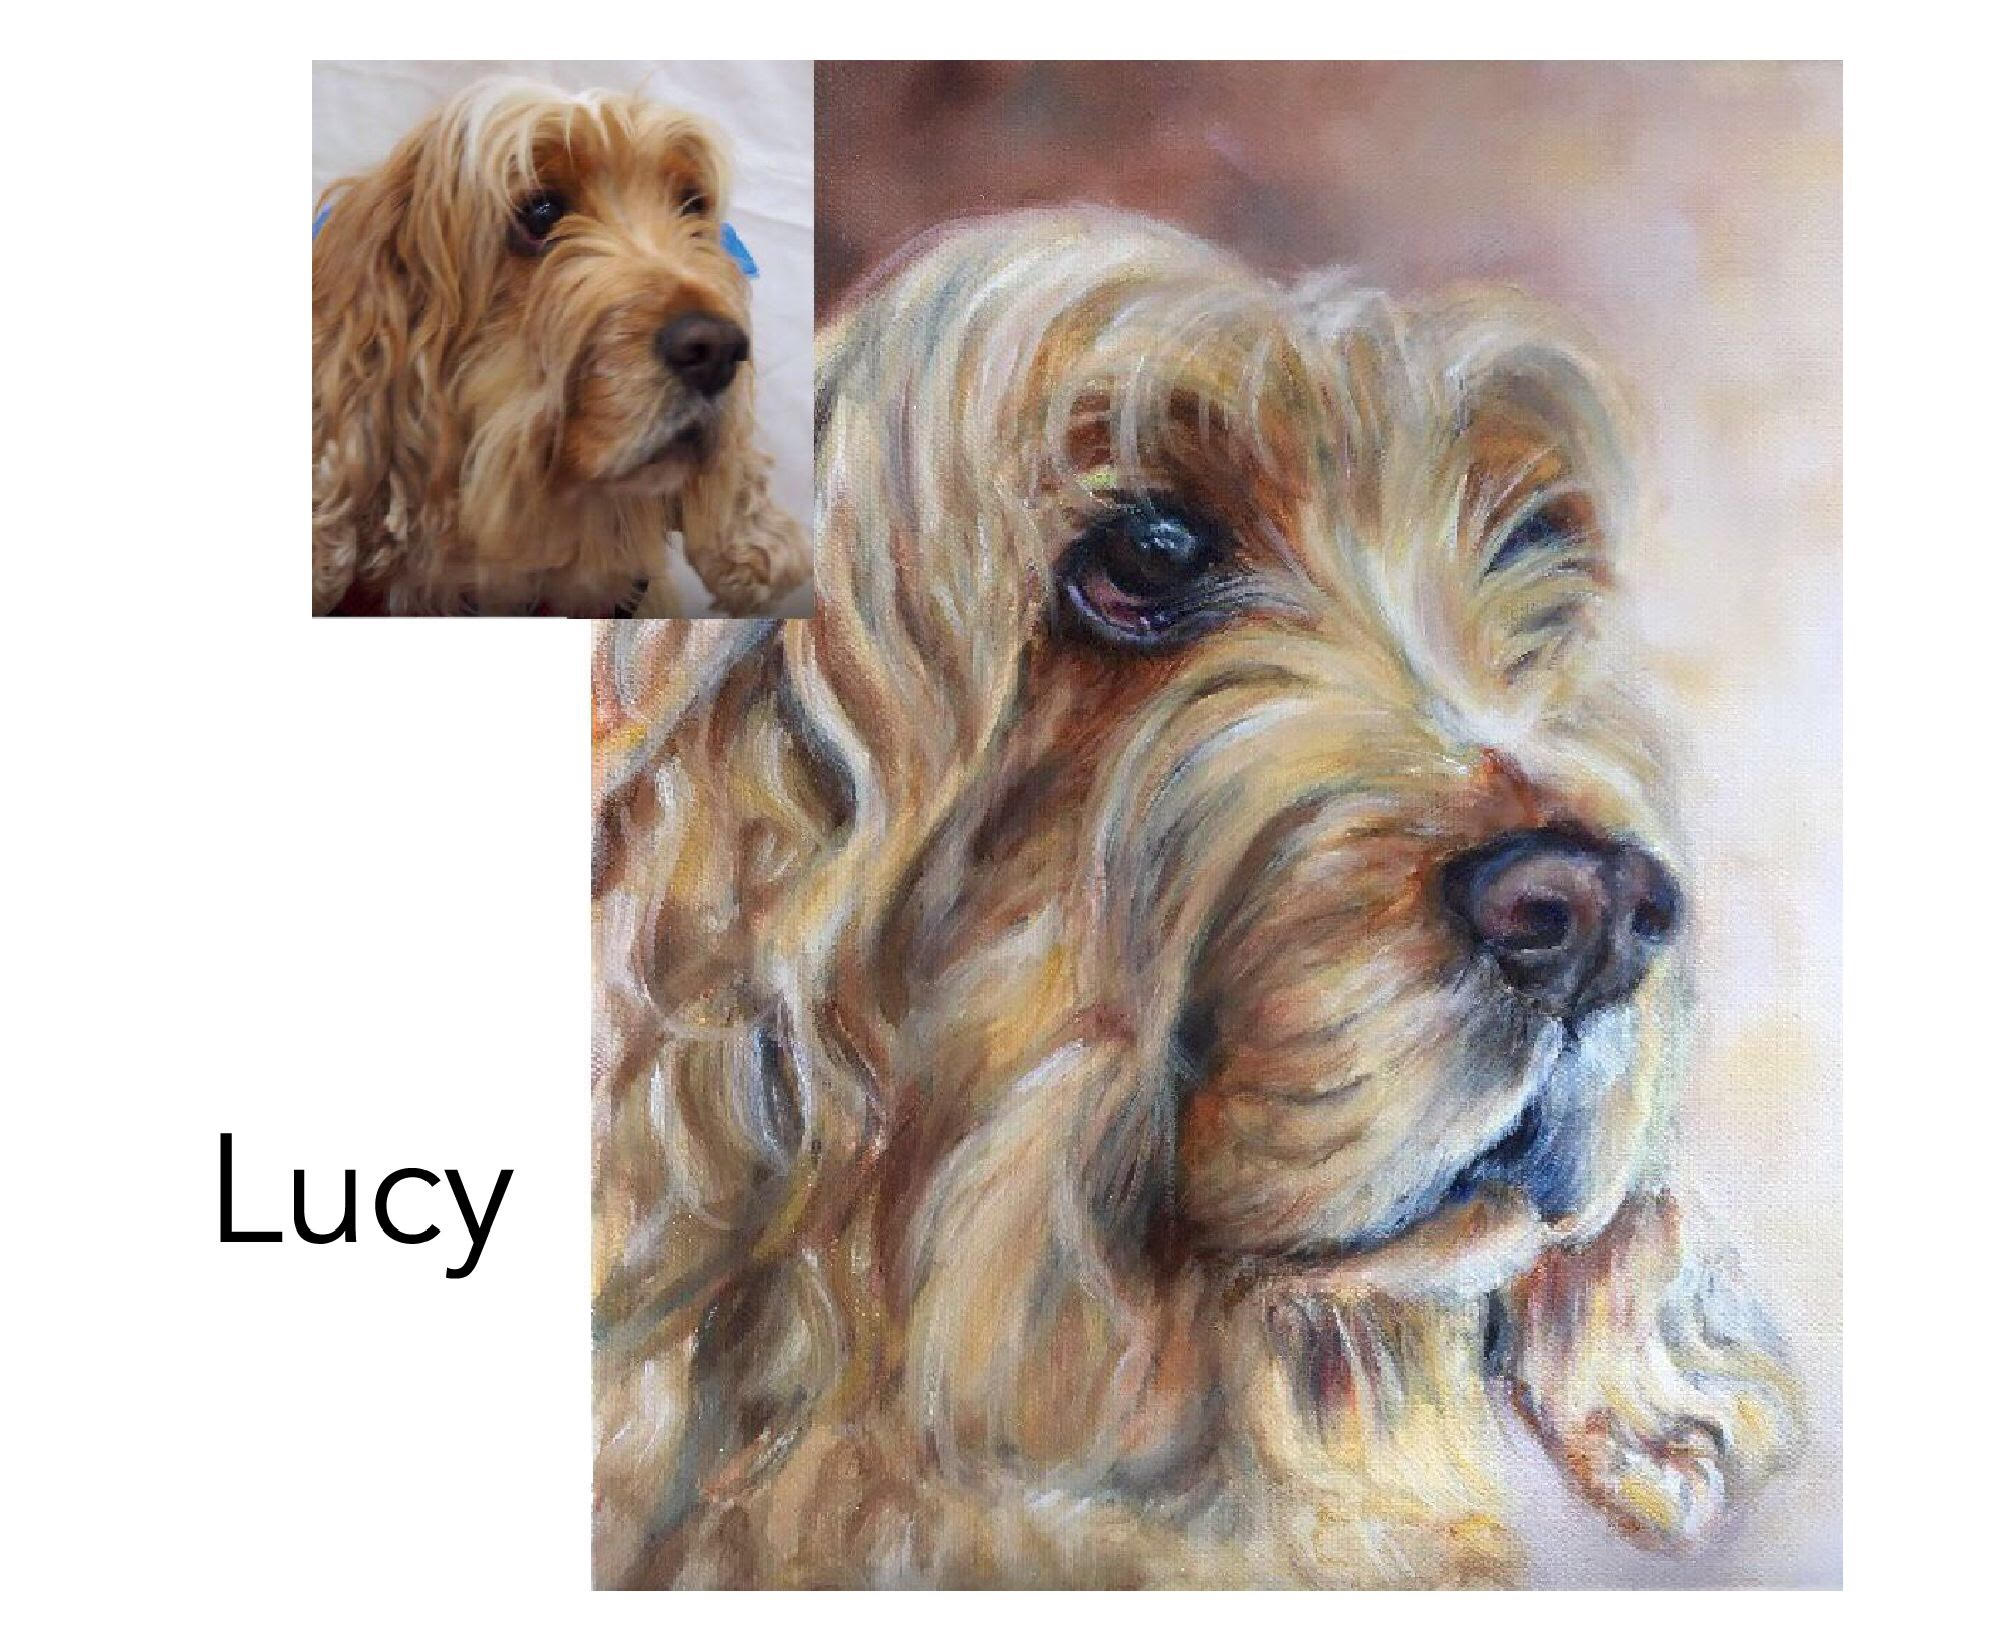 """Cocker Spaniel - Acrylic and oil on canvas 10"""" x 12"""" (25.4cm x 30.48cm)Private commissionCoffs Harbour, NSW—————————————-Lucy is very gentle and loving to her Mum. She has a weak heart so is extra special."""